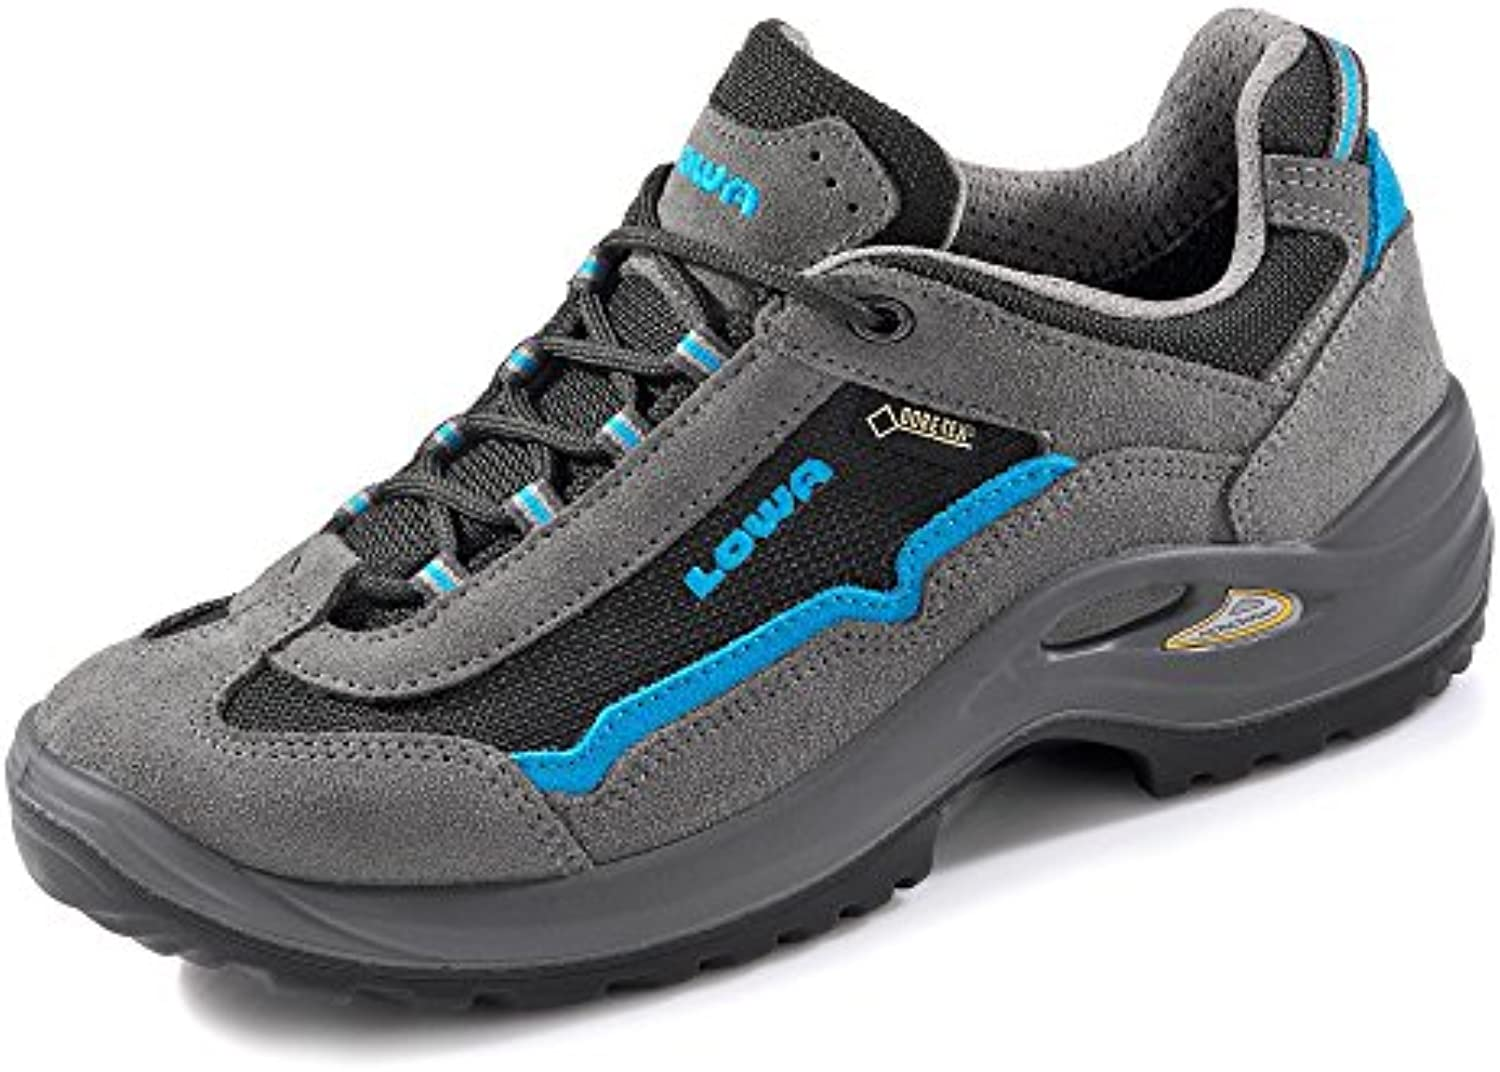 3676b57ab Lowa gamesworld-2736 Women s Parent tyro Blau GTX Lo WS Trainers  Grau Pacific Blau Parent B01D1GVLLQ 1438937